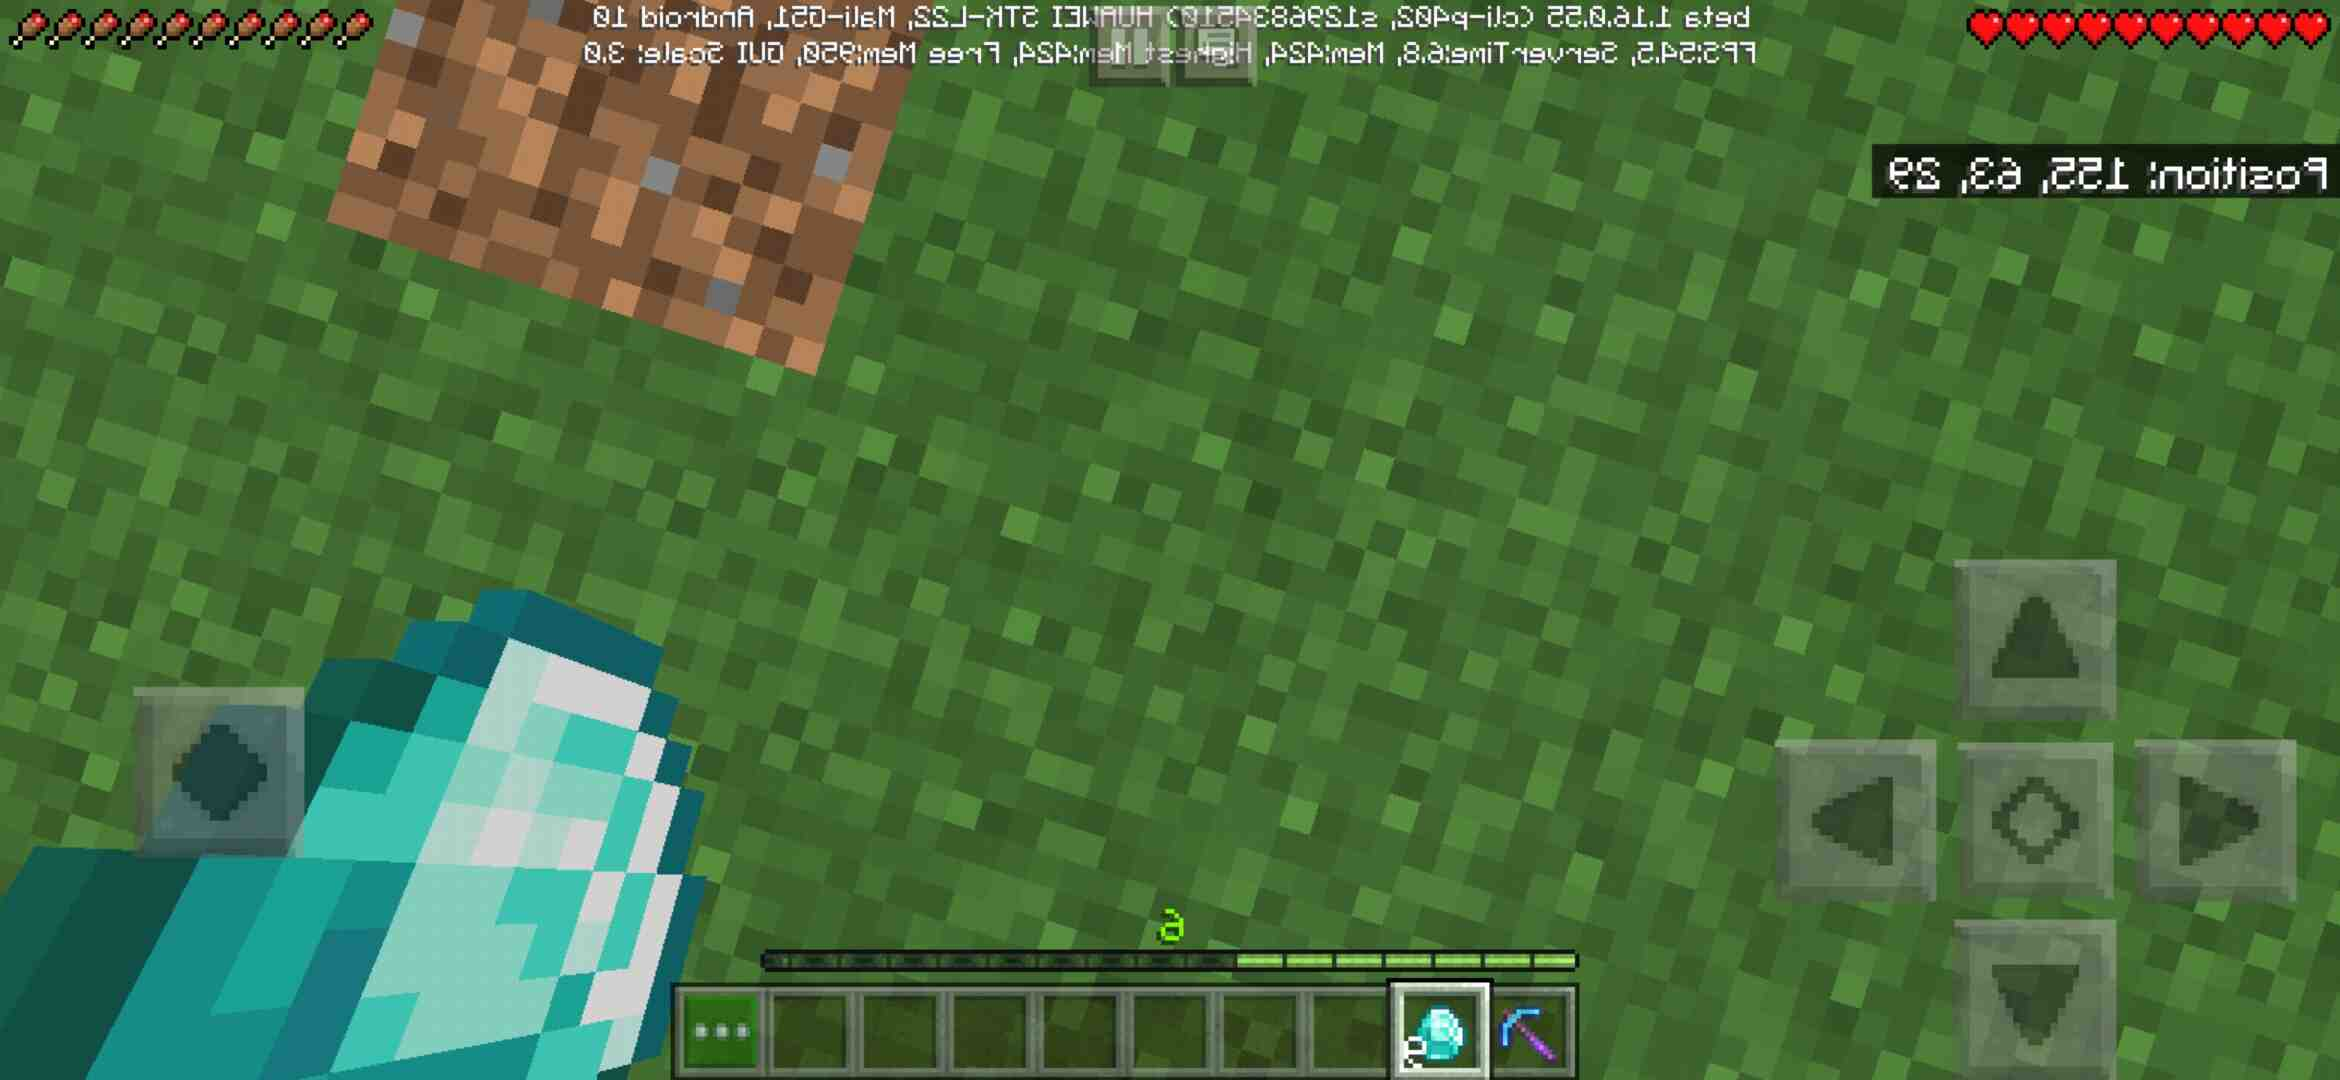 How to get fortune 3 minecraft